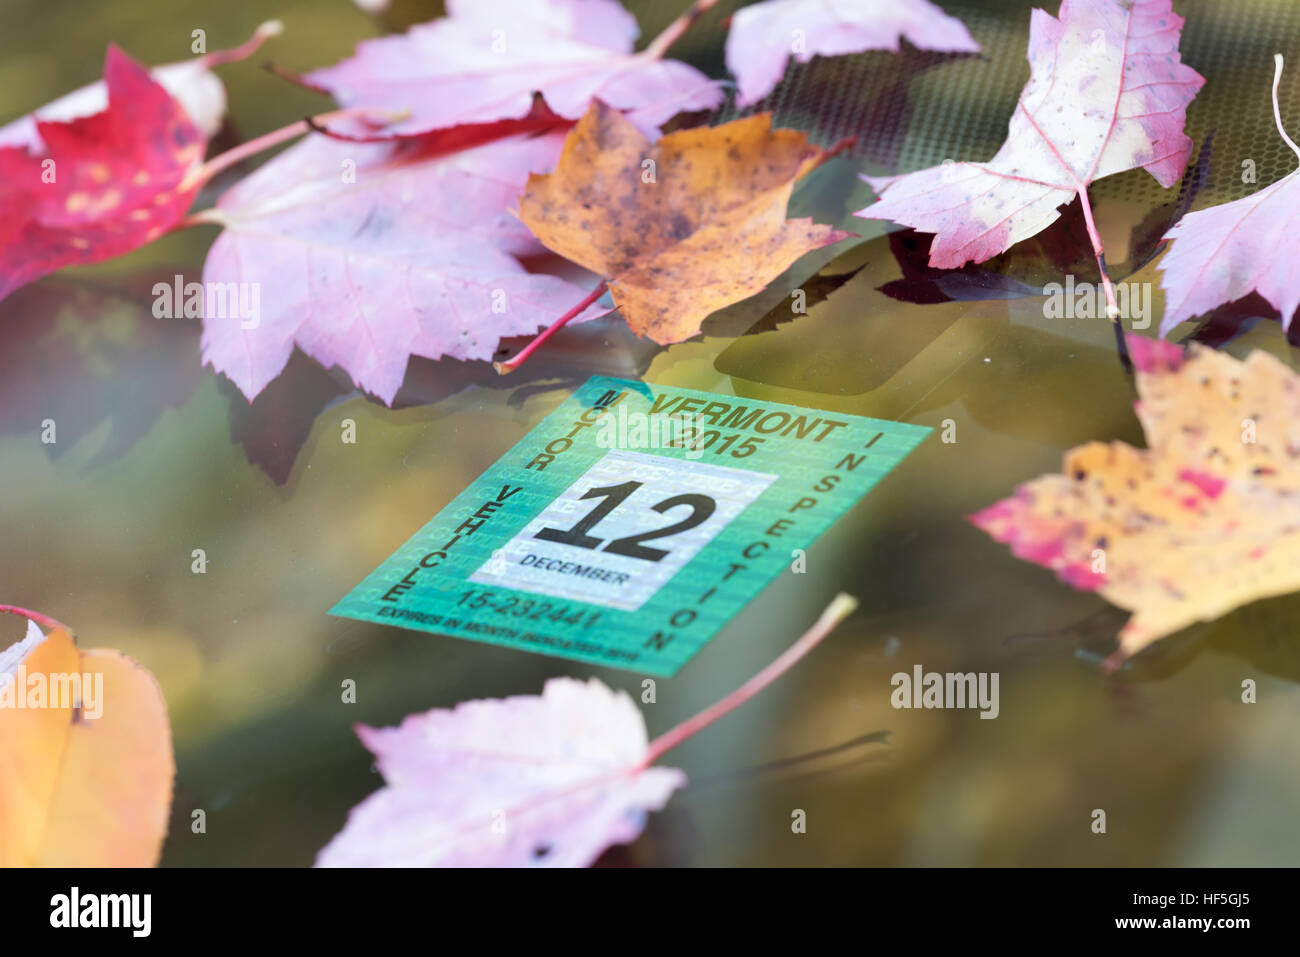 Autumn leaves and inspection sticker on the windshield of a car in Vermont's Green Mountains. - Stock Image